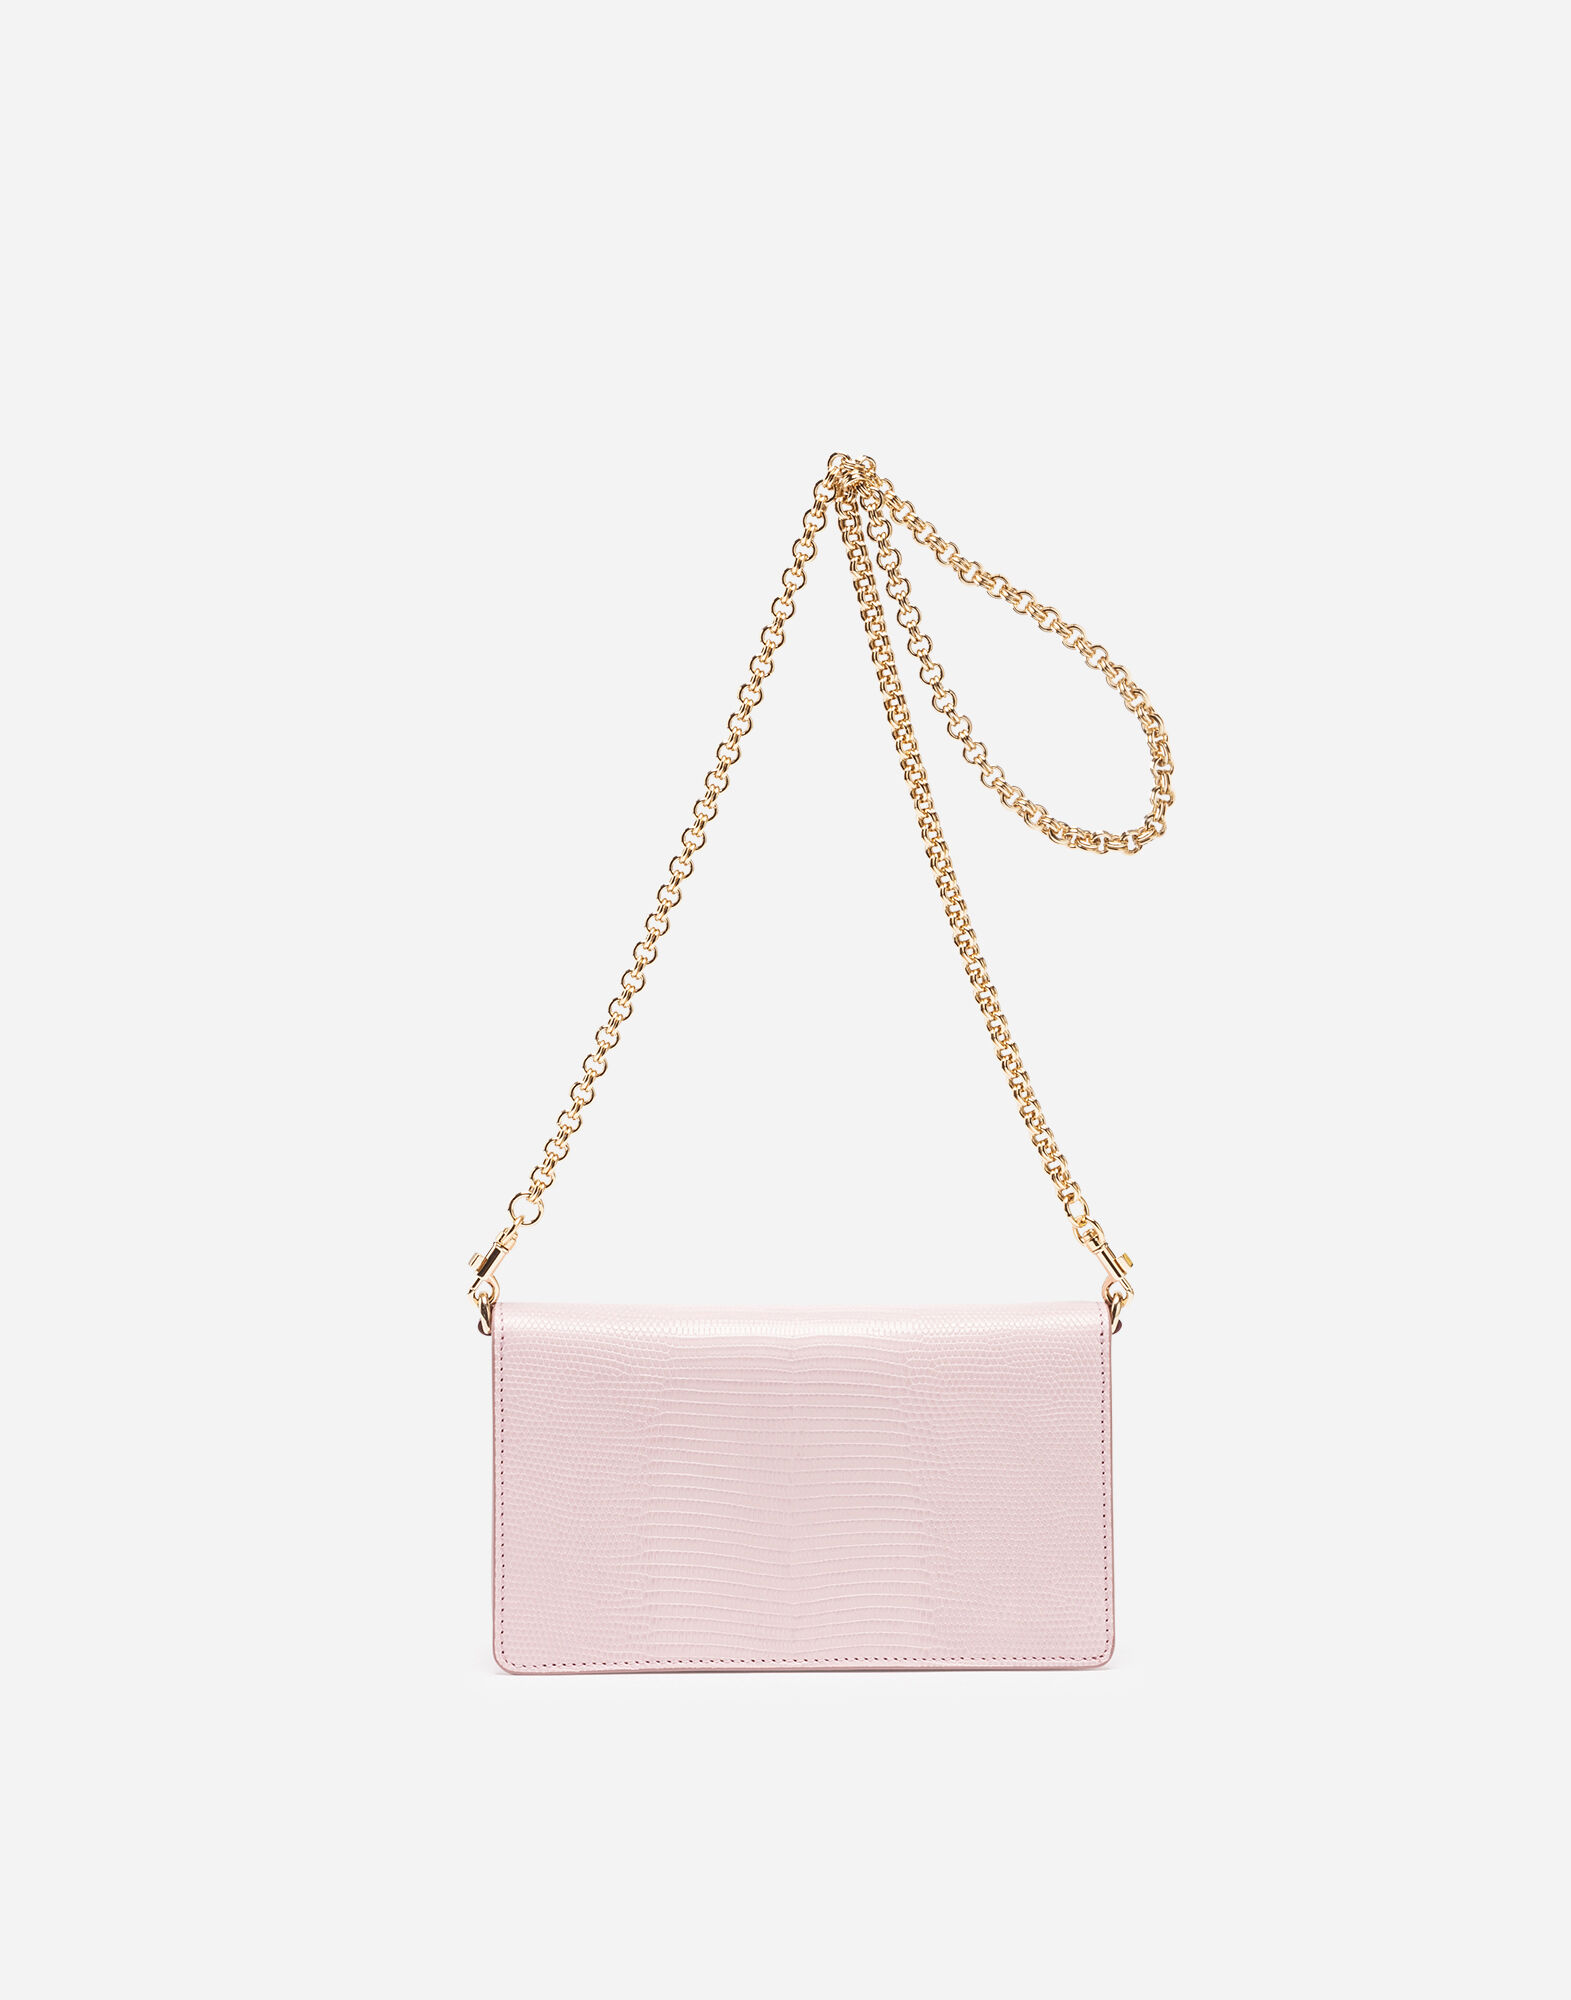 MINI LEATHER LUCIA BAG